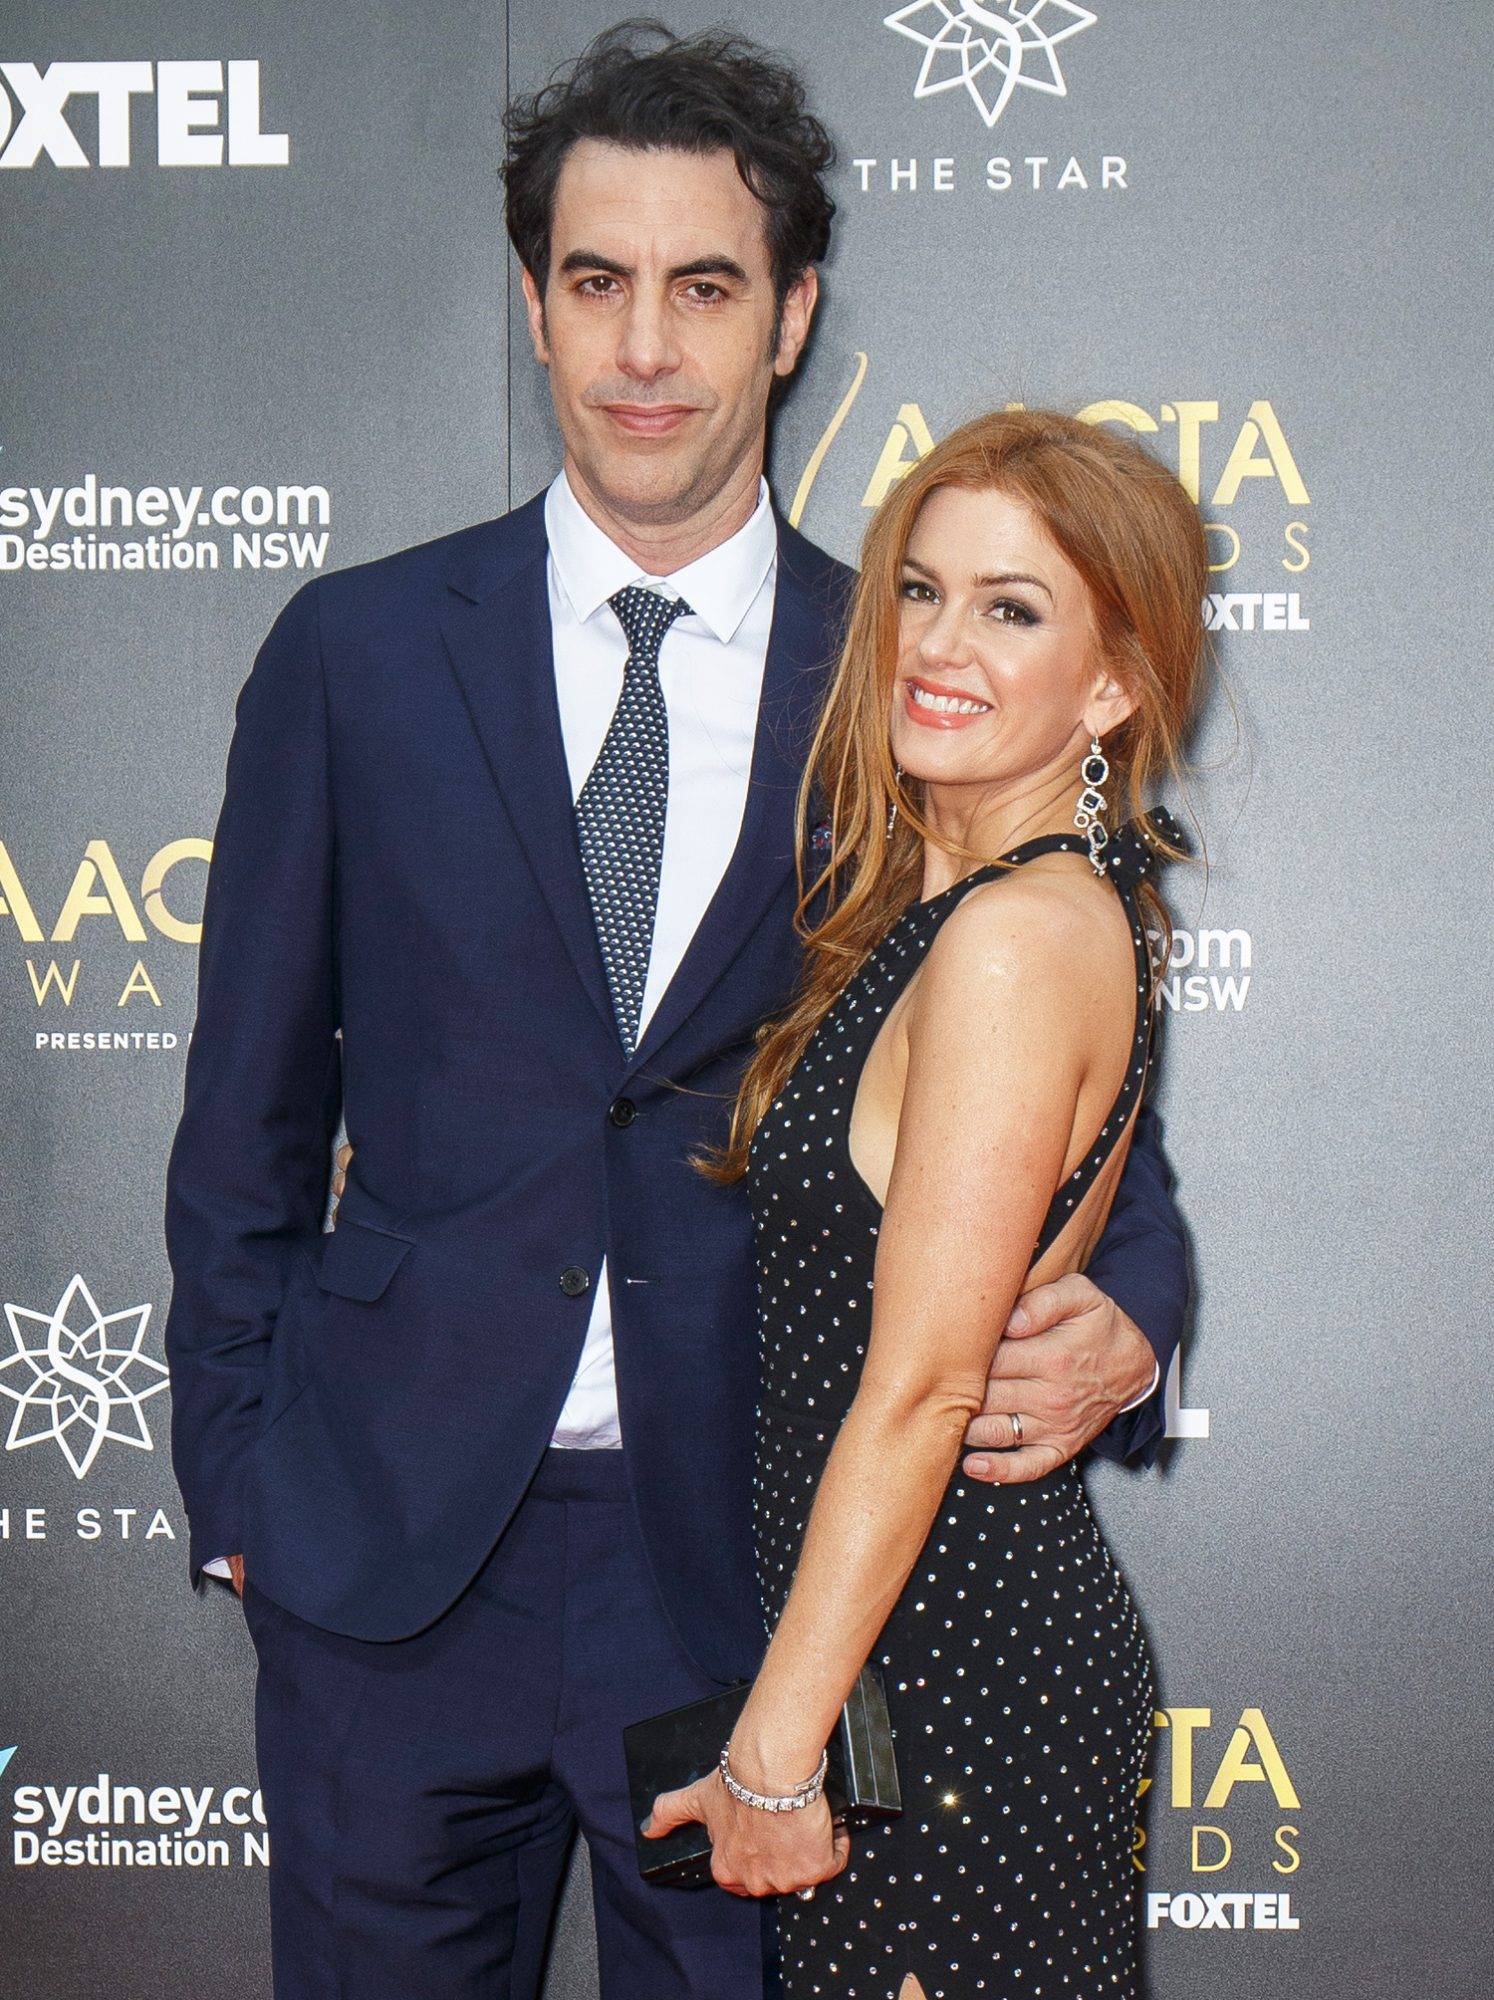 Isla Fisher and Sacha Baron Cohen on Red Carpet for 6th AACTA Awards Ceremony, Sydney